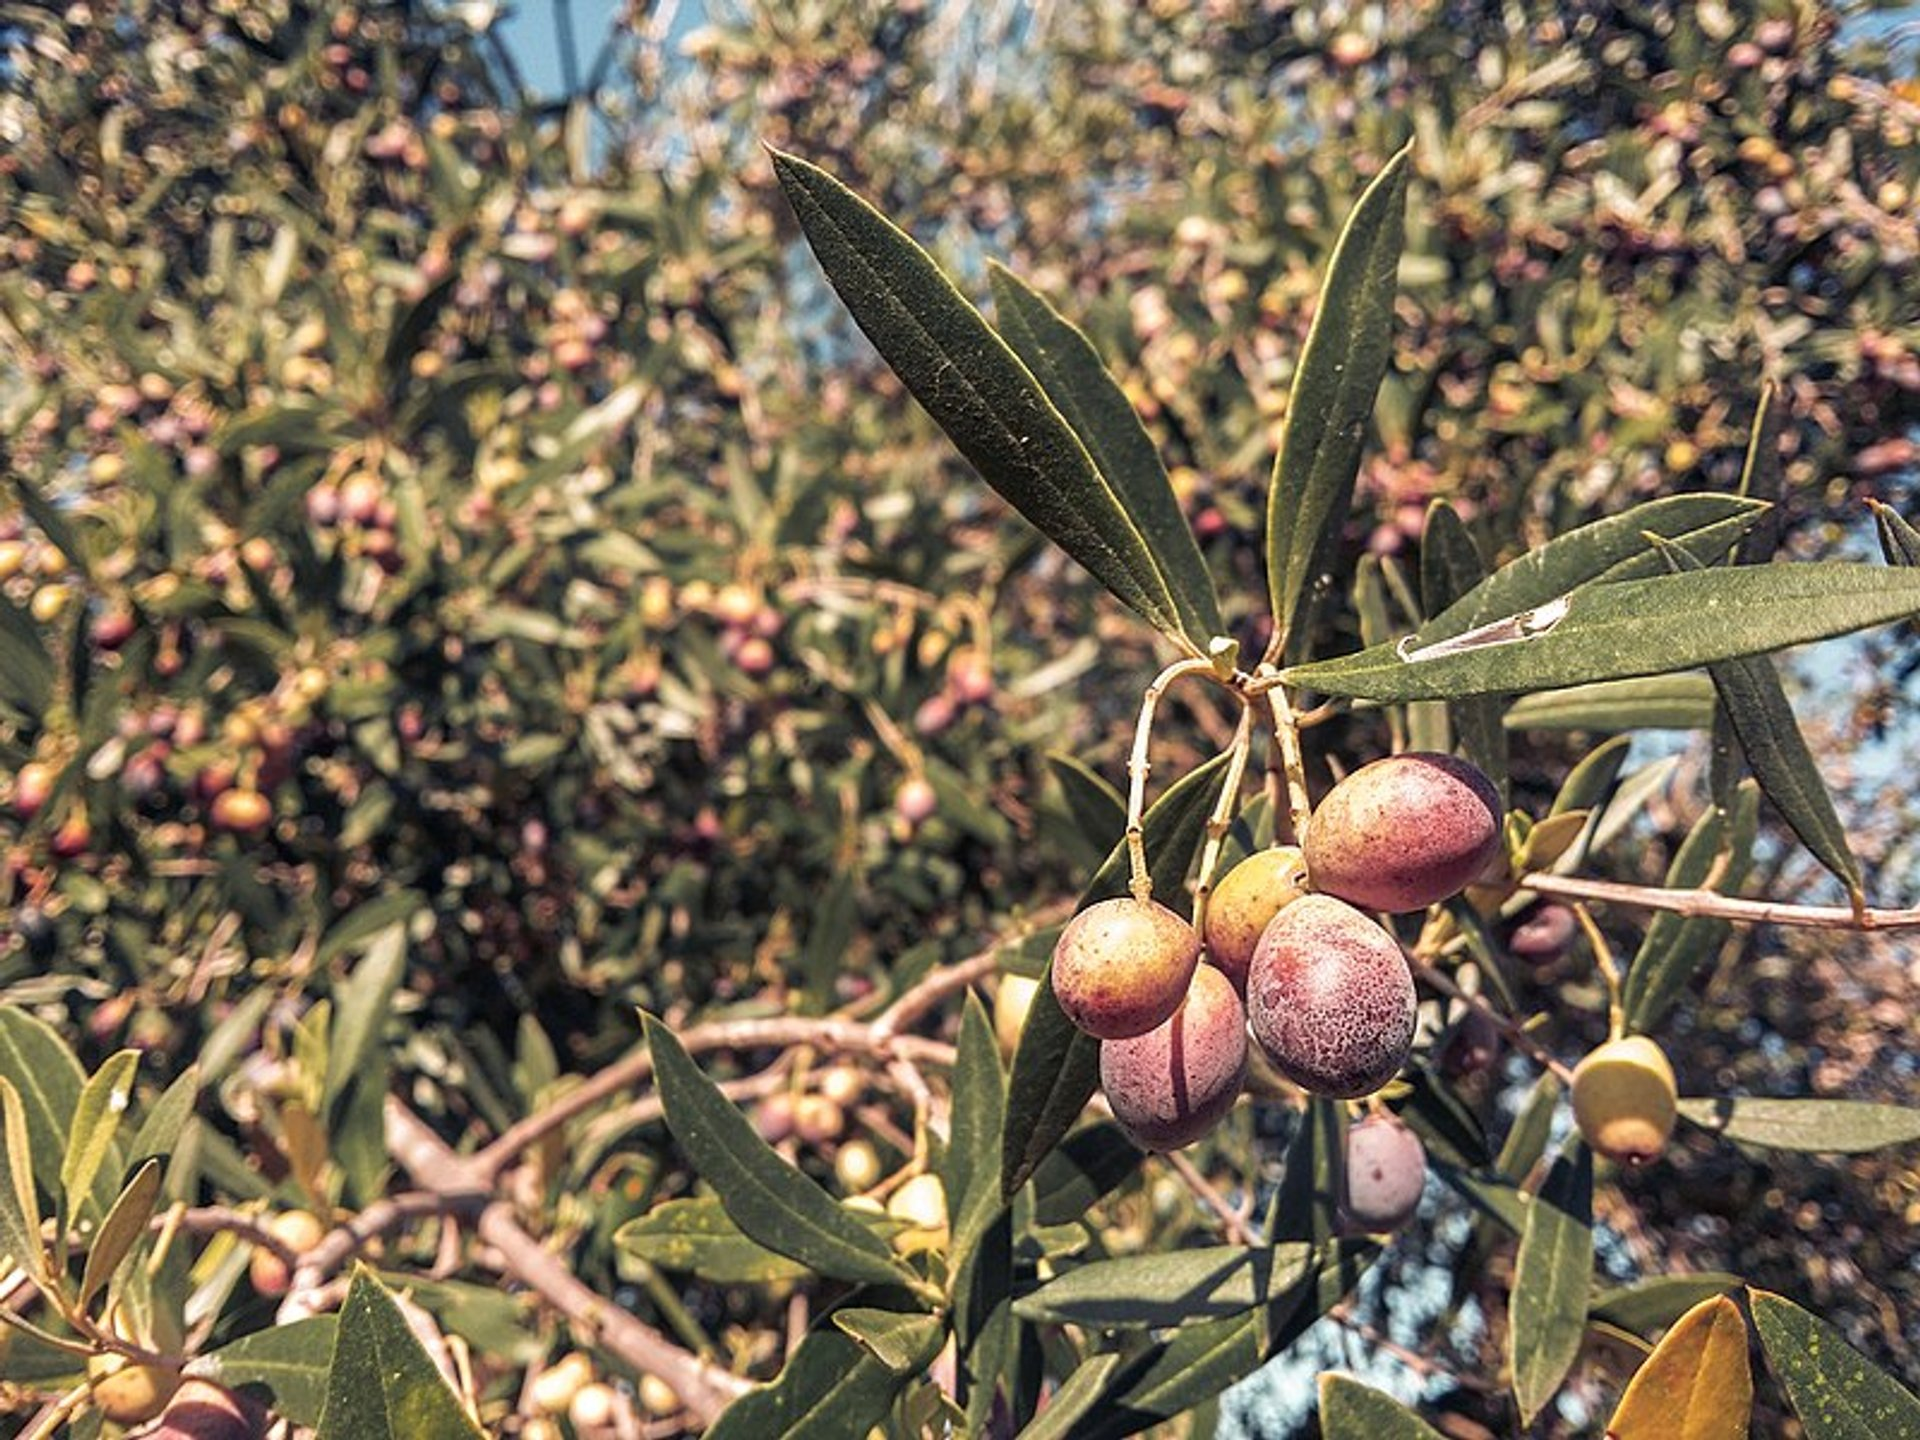 Olive Harvest in Tunisia 2020 - Best Time